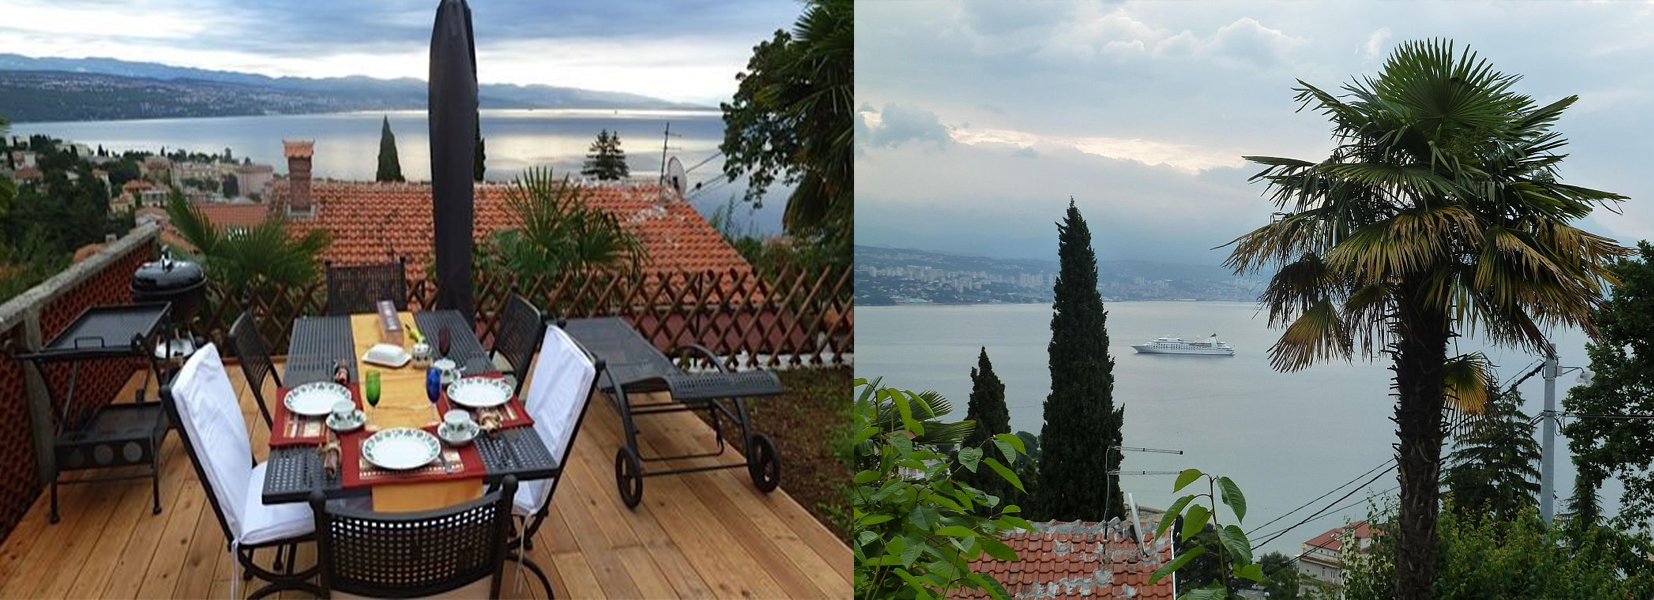 Vacation Home Rental Rijeka